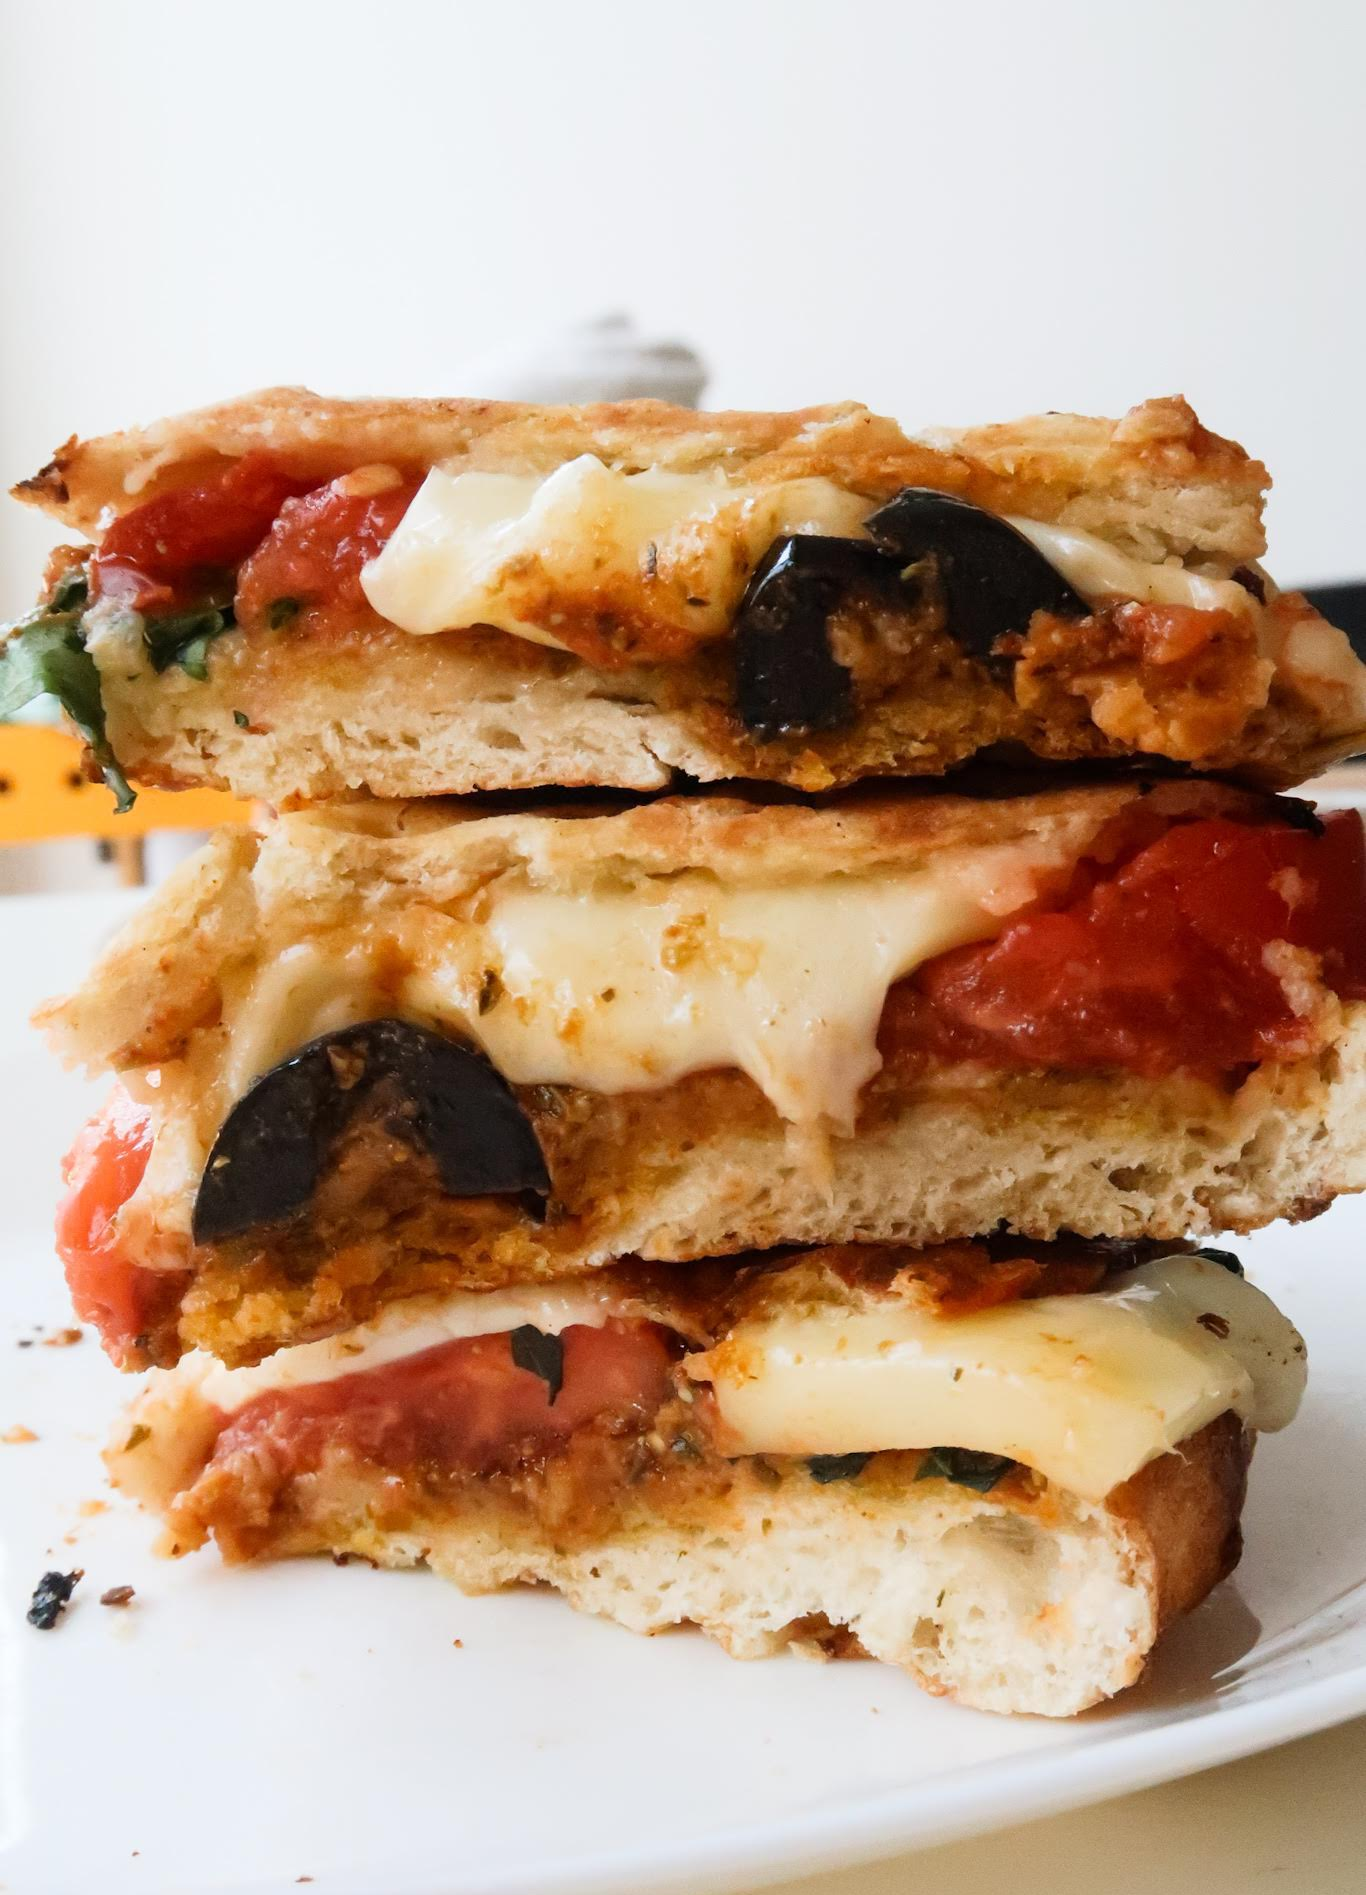 Delicious garlic, tomato pesto panini recipe, made with pita bread! Pretty similar to grilled cheese sandwich, this quick and easy recipe is a delicious lunch or even dinner (keeping things simple!!!).